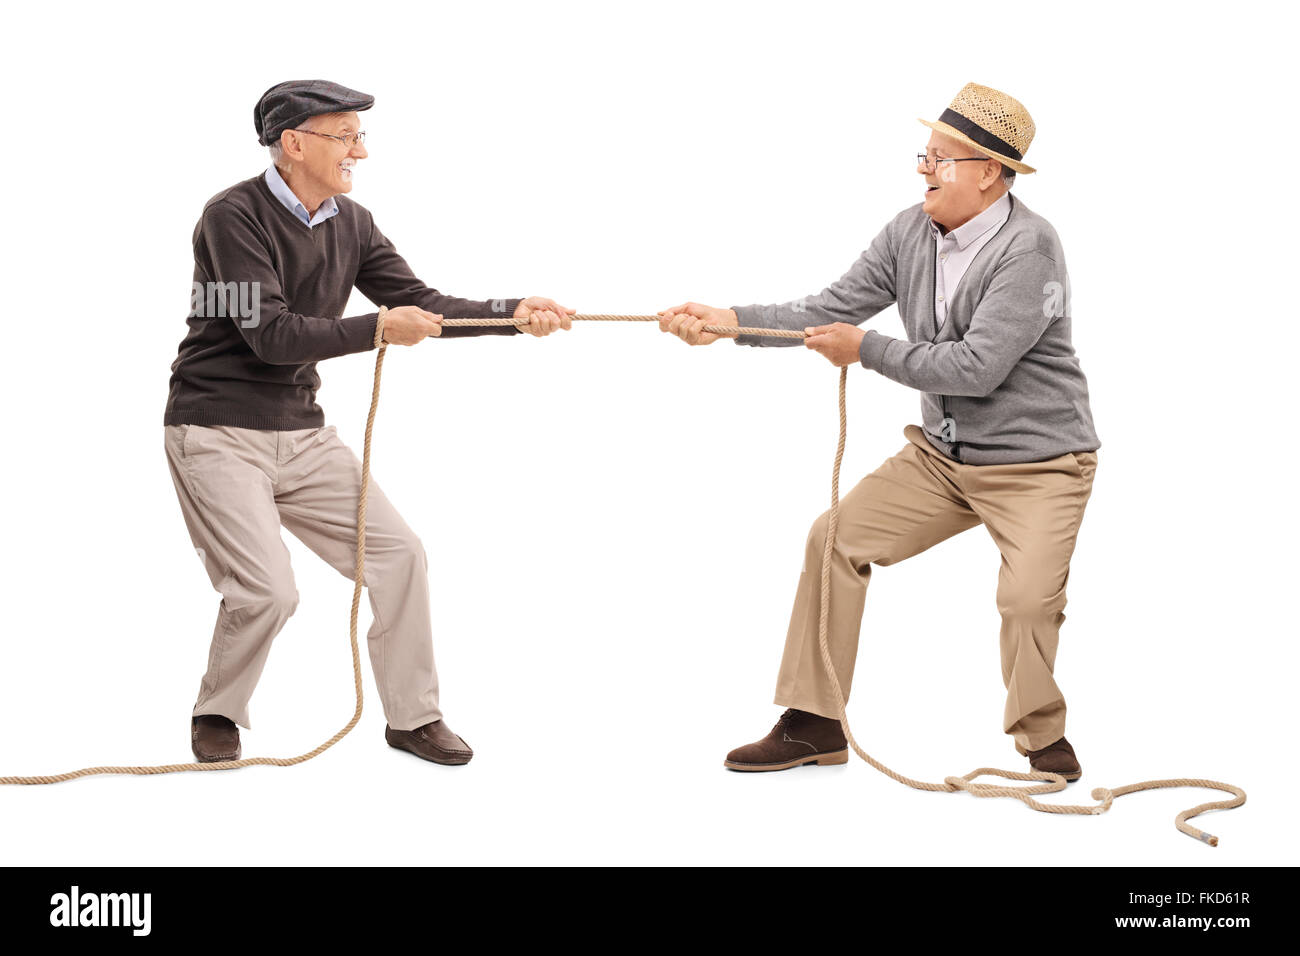 Studio shot of two cheerful seniors competing in a tug of war isolated on white background - Stock Image